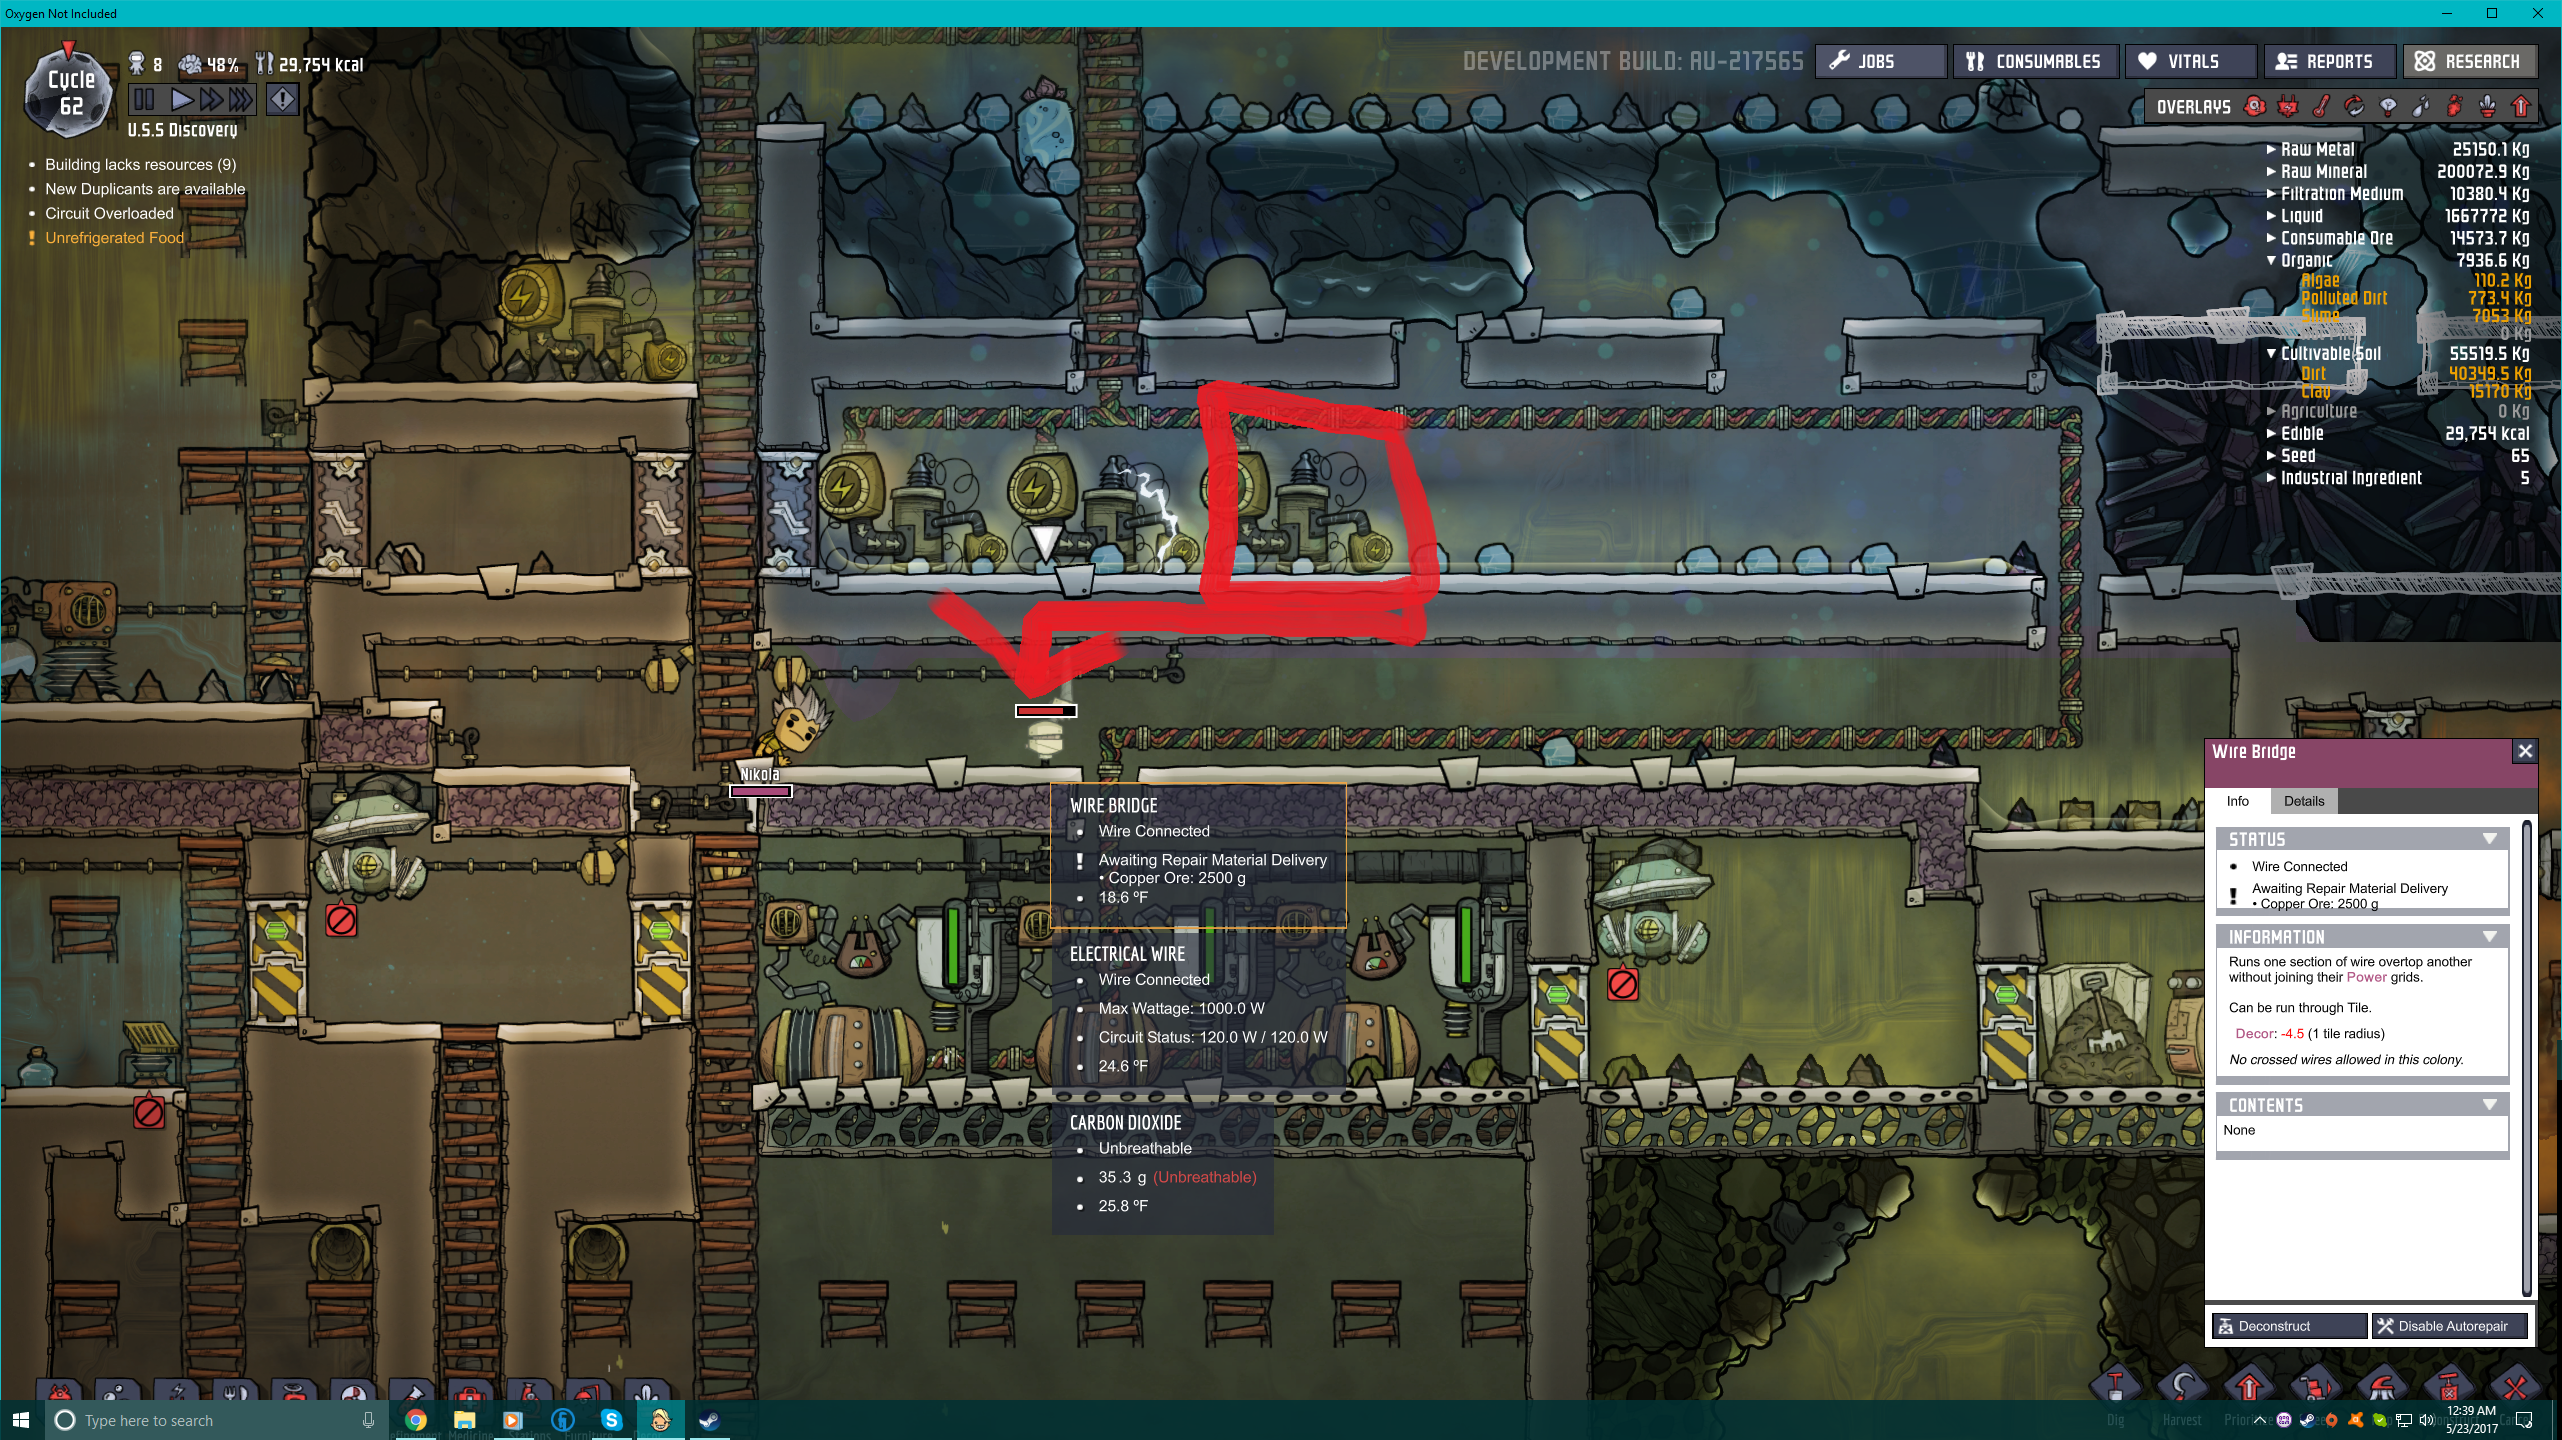 wire bridge only overload damage oxygen not included early